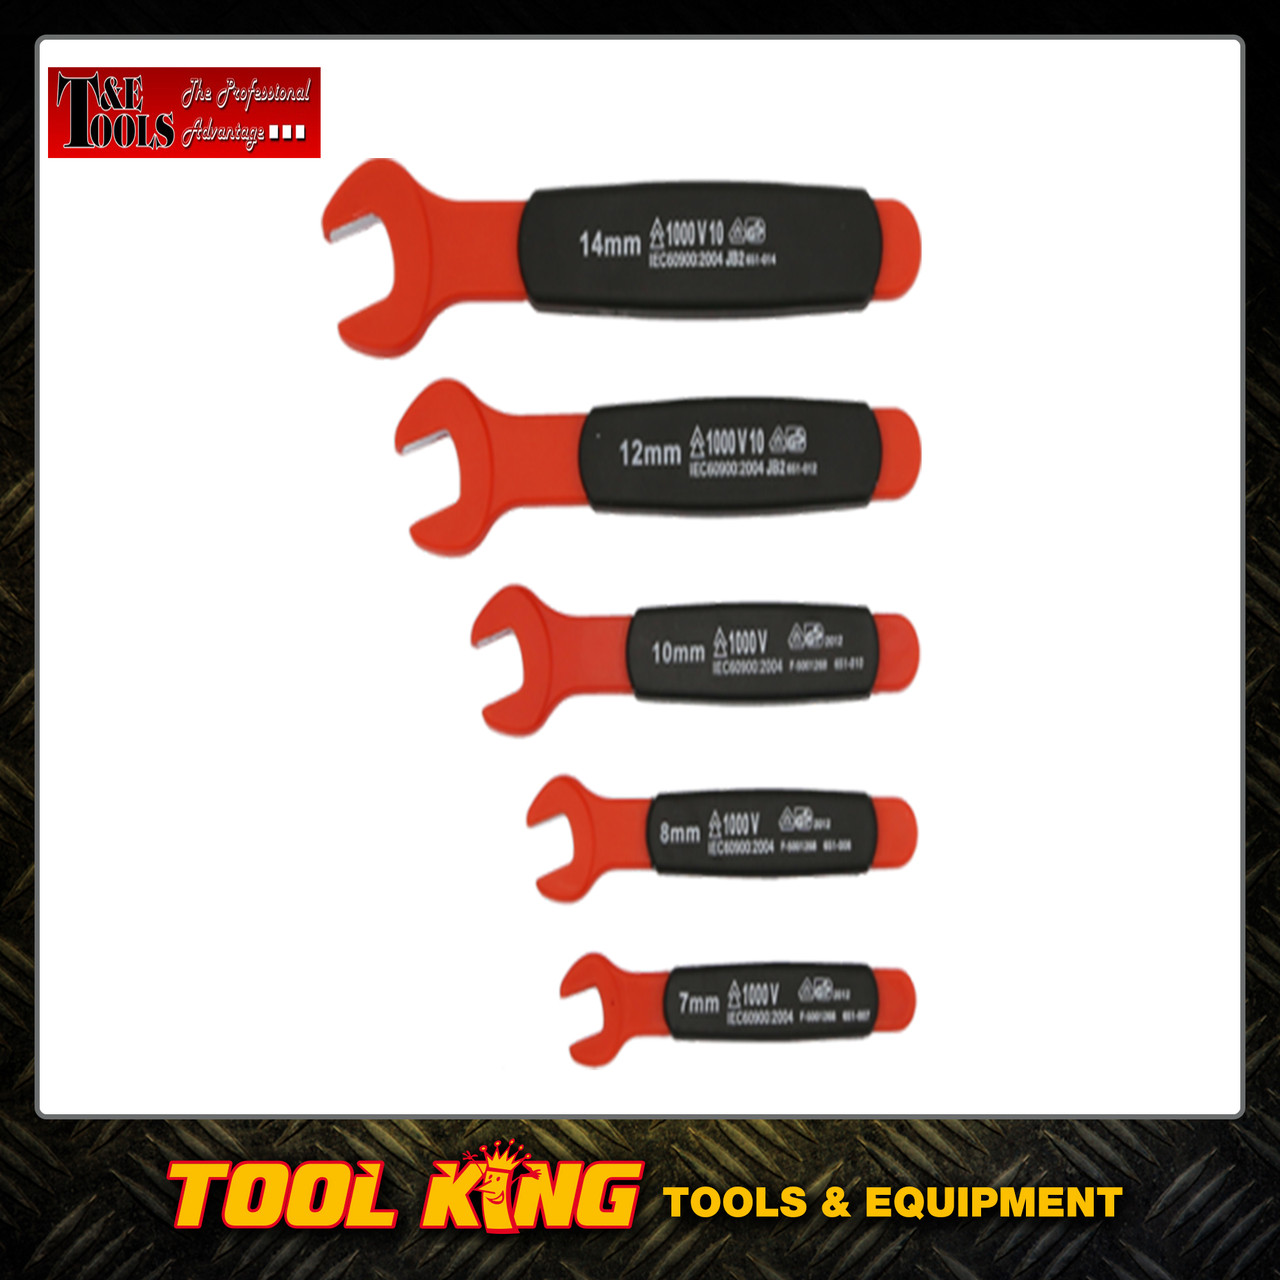 5pc VDE Insulated Spanner set 1000 Volt T&E Tools